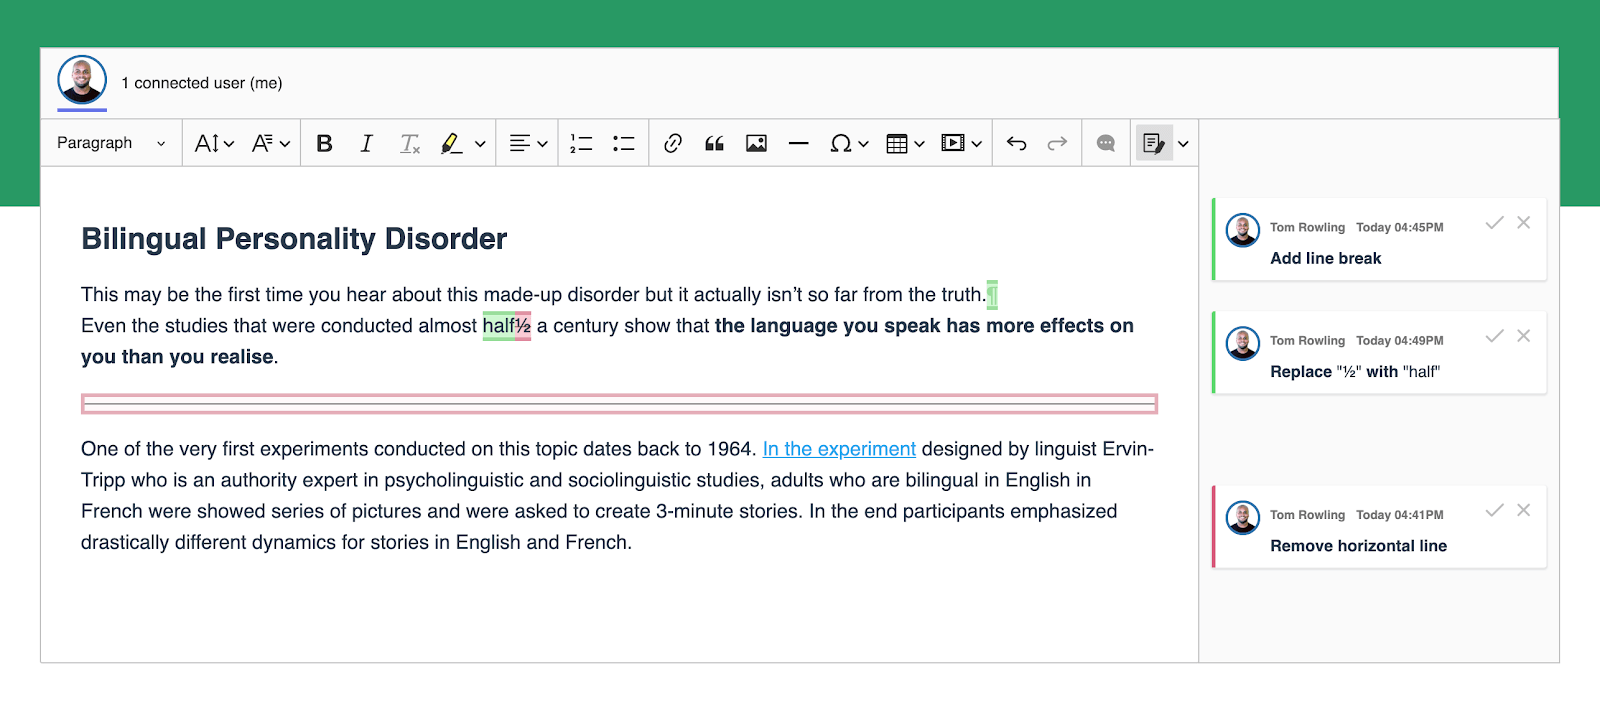 New features such as line break available in track changes mode in CKEditor 5 WYSIWYG editor.